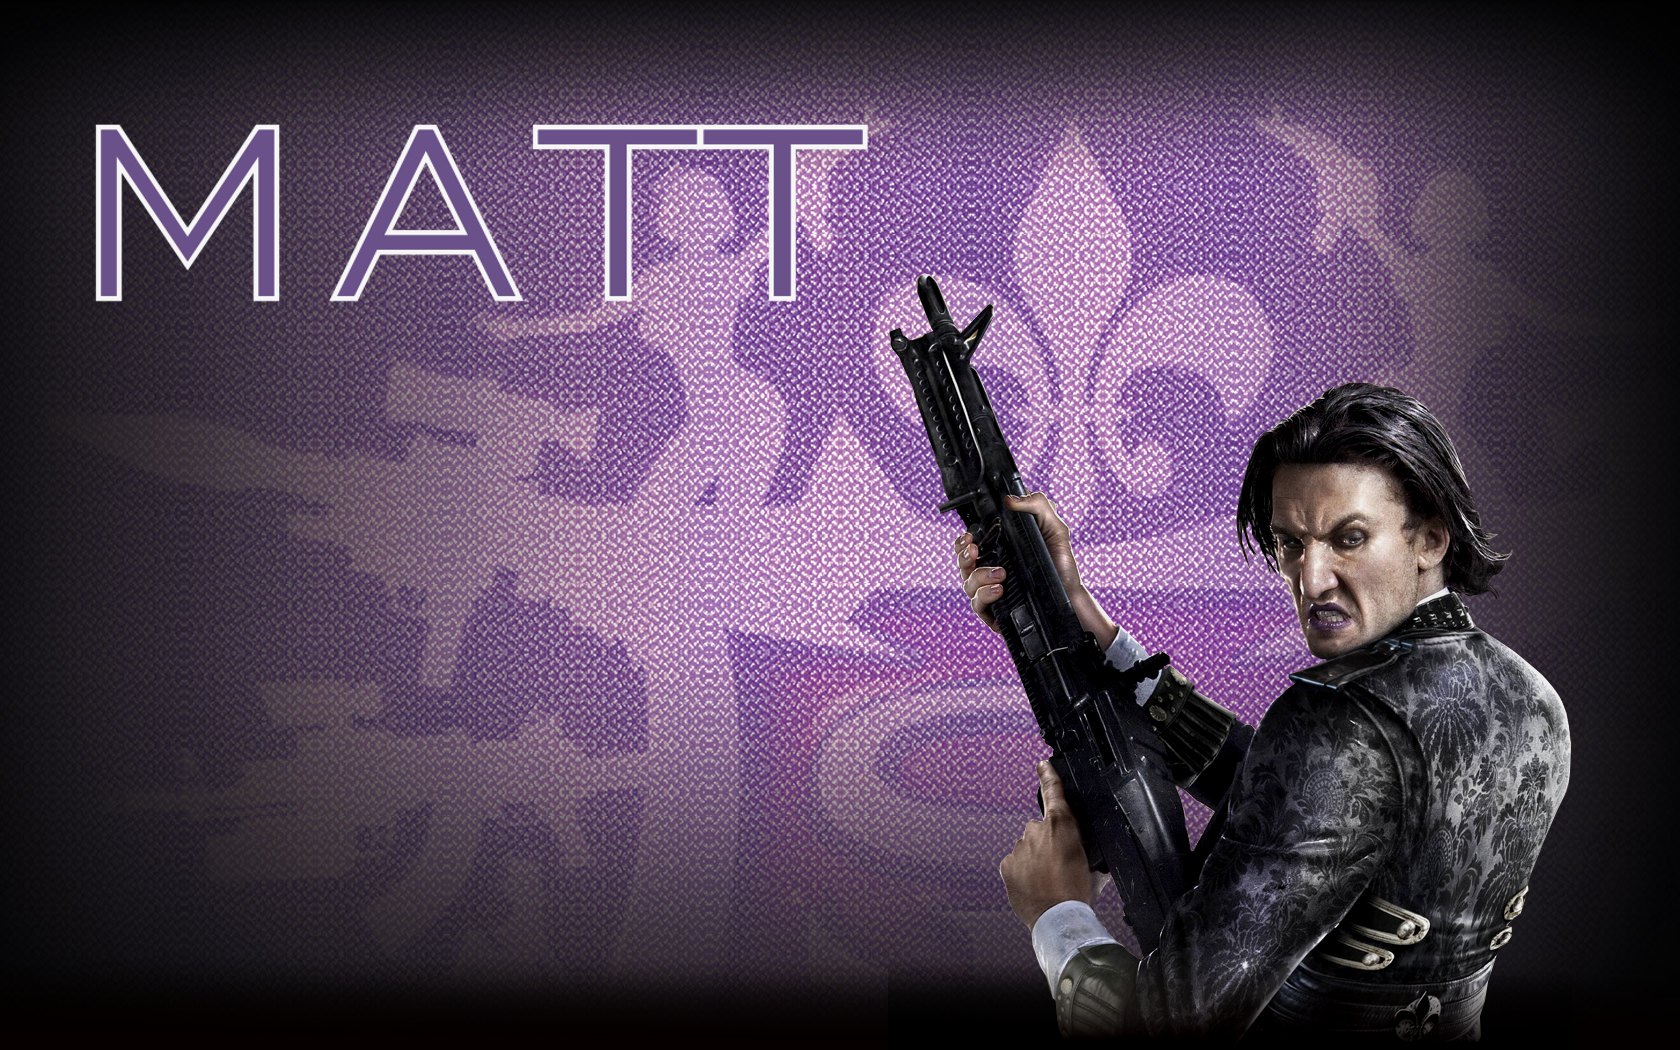 Saints Row 4 Wallpapers: Saints Row IV: Matt Wallpaper By HRDLA On DeviantArt